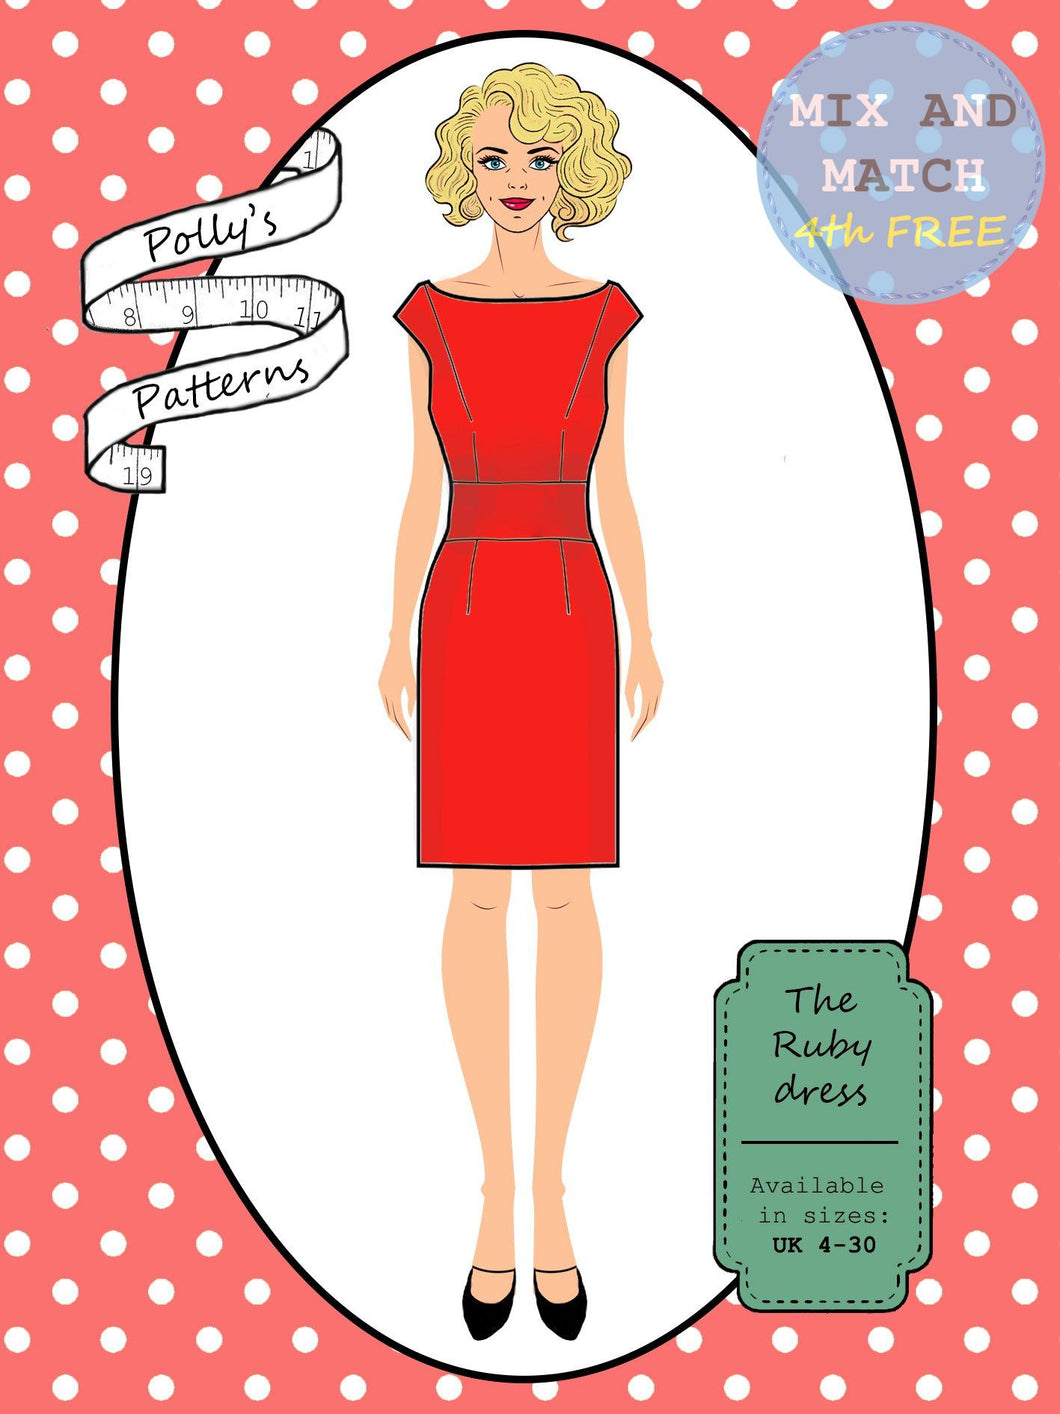 Polly's patterns - The Ruby Dress - Pattern Shop